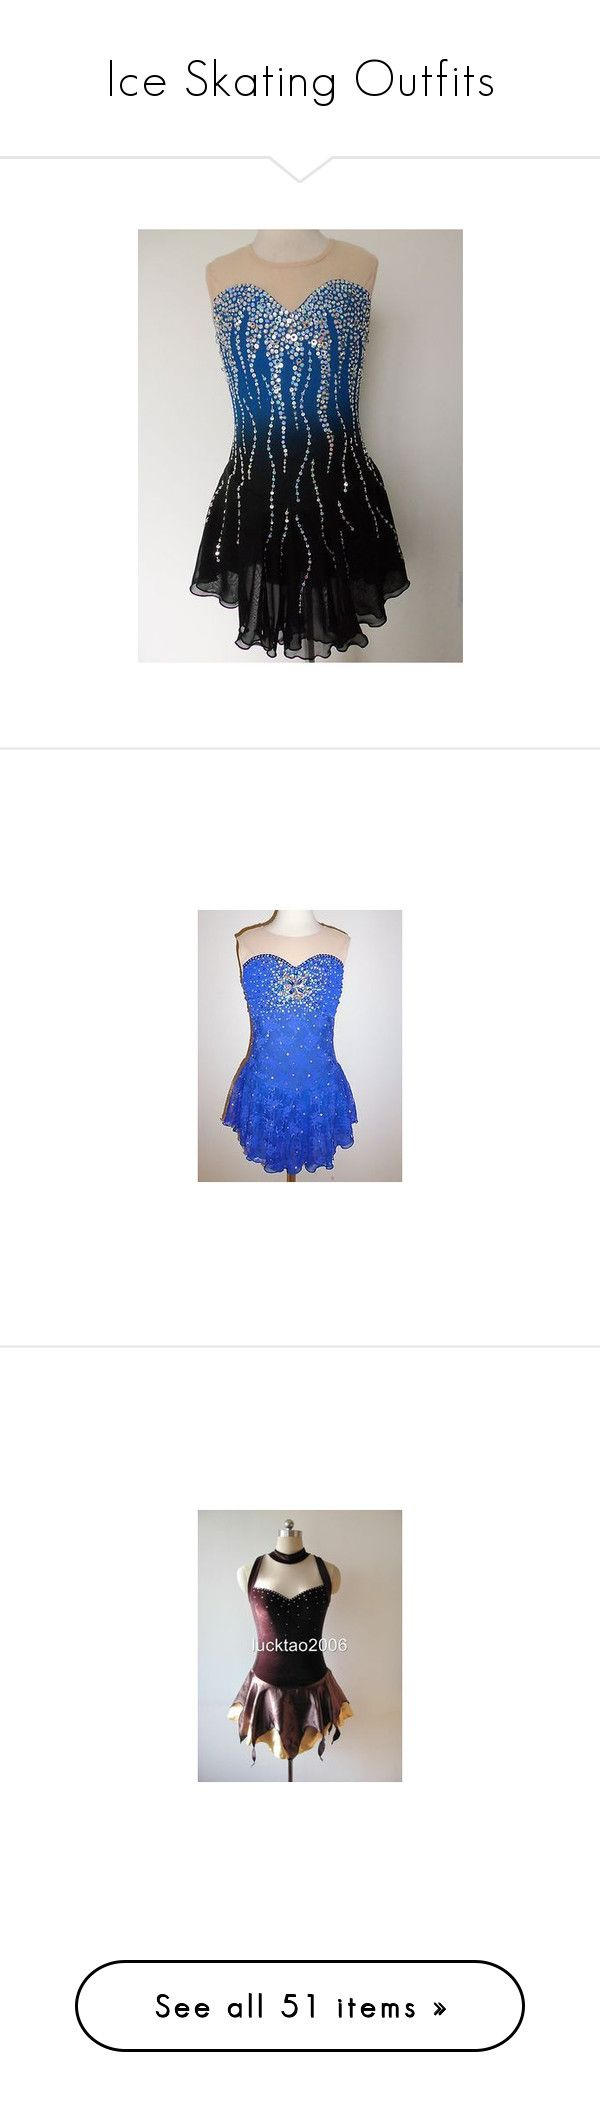 """""""Ice Skating Outfits"""" by joyjoybunny ❤ liked on Polyvore featuring dresses, ice skating, dance, lullabies, sports, sport dress, brown dress, brown cocktail dress, sports dress and figure skating"""